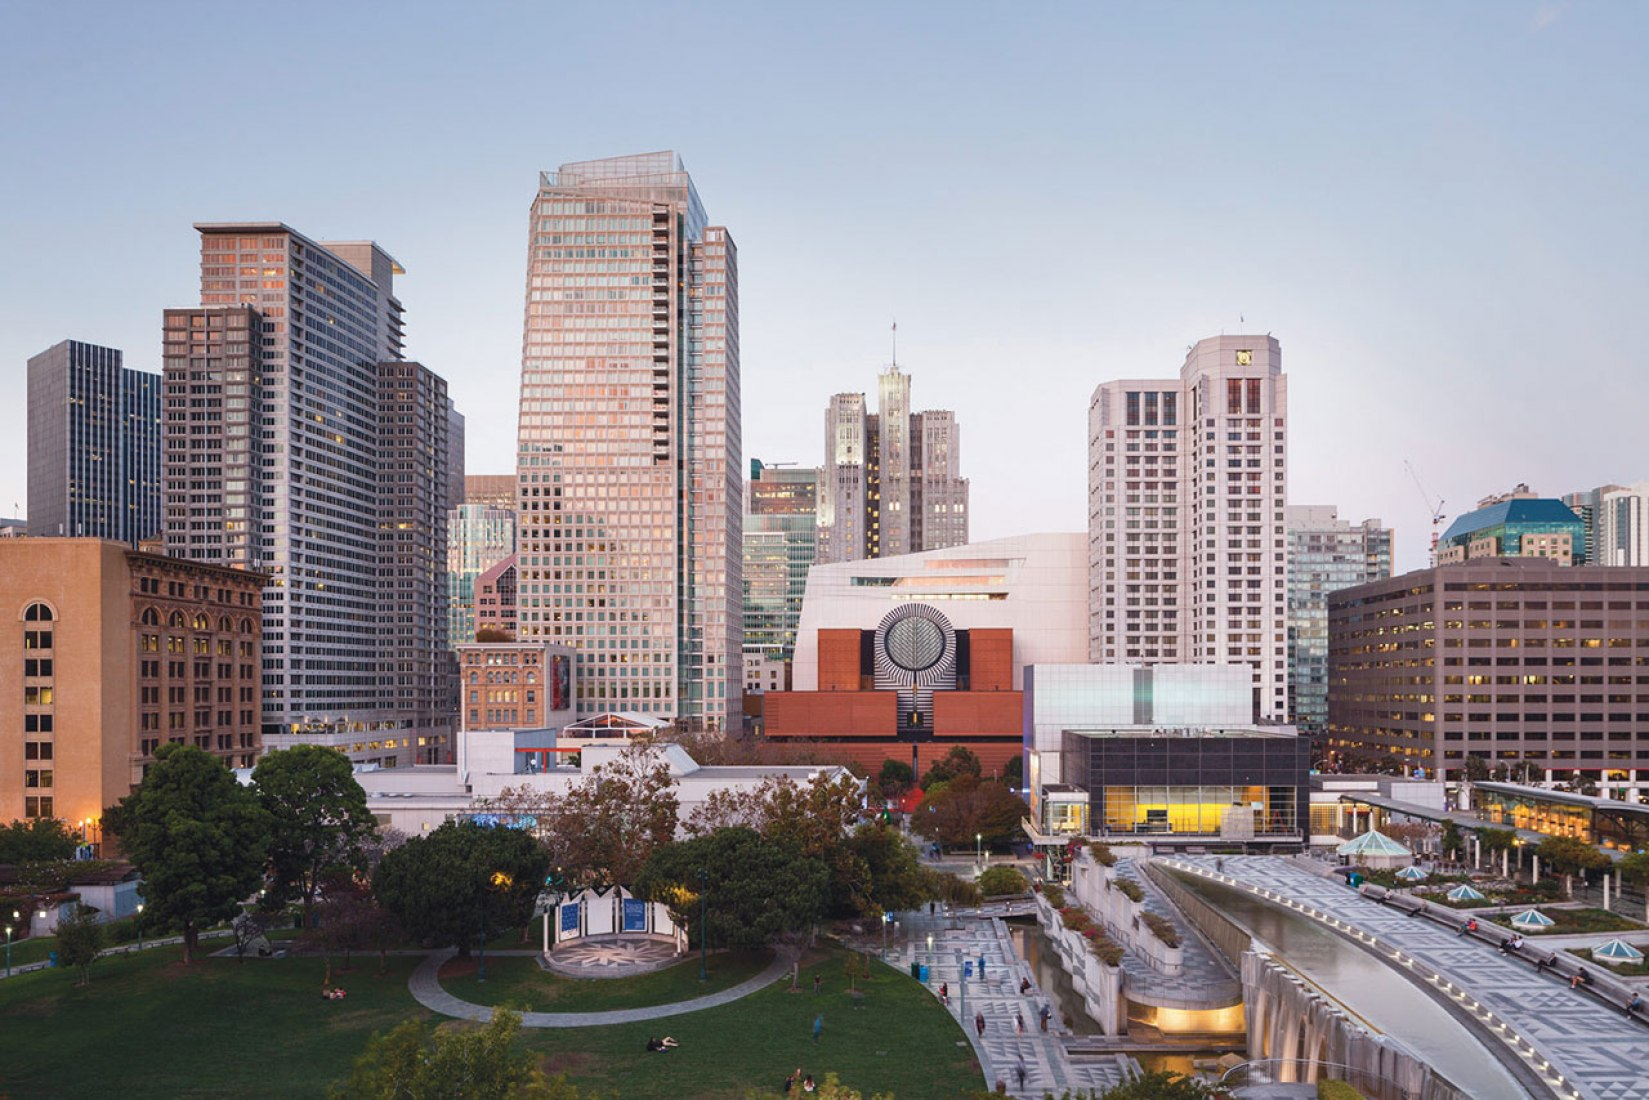 Overview. San Francisco MOMA expansion by Snøhetta. Photograph © Henrik Kam. Image courtesy of SFMOMA